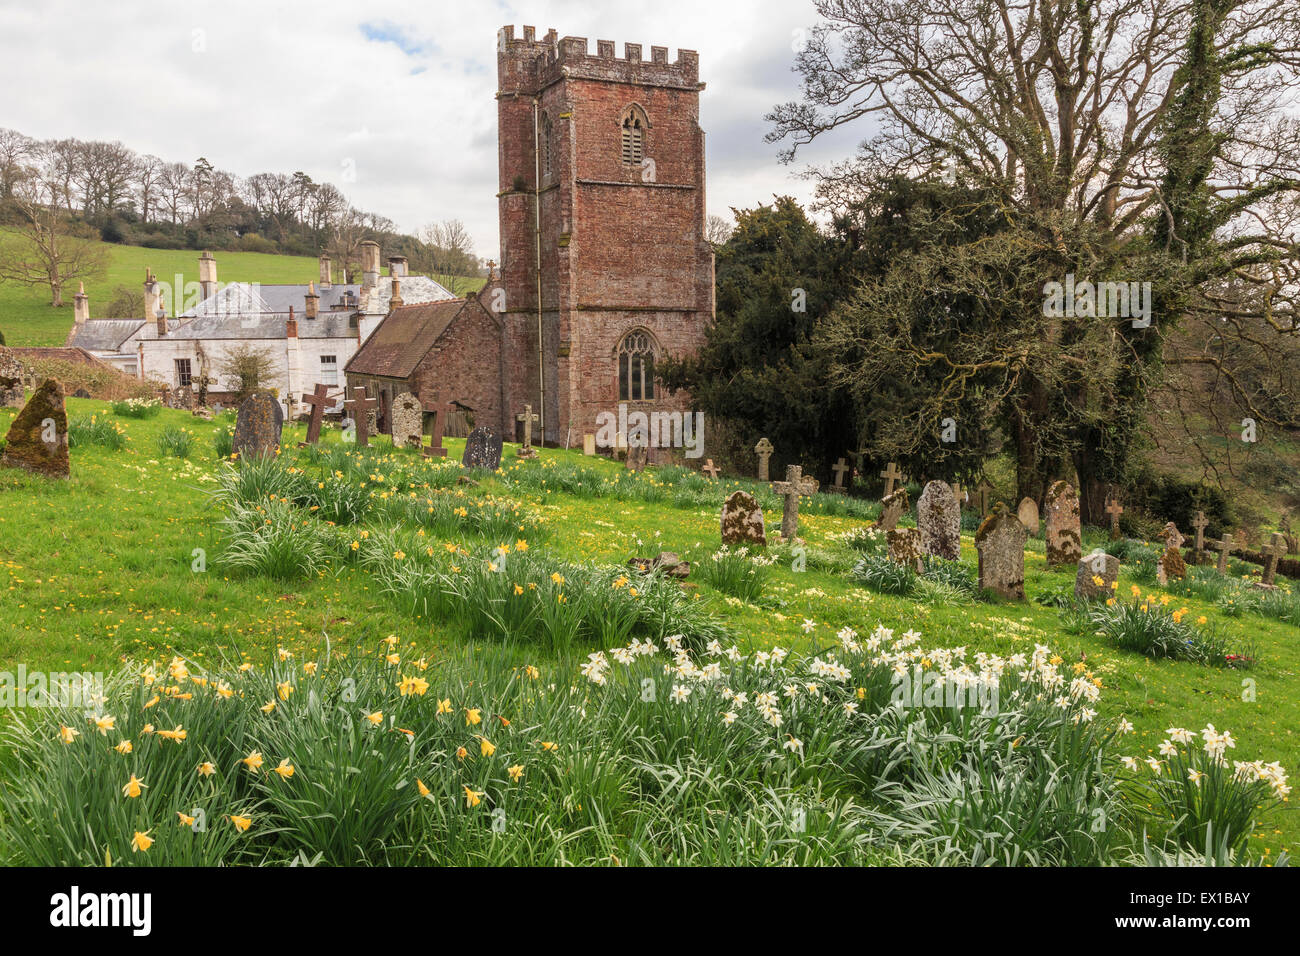 St Pancras church and church yard, West Bagborough, during spring. Manor house in background. Stock Photo